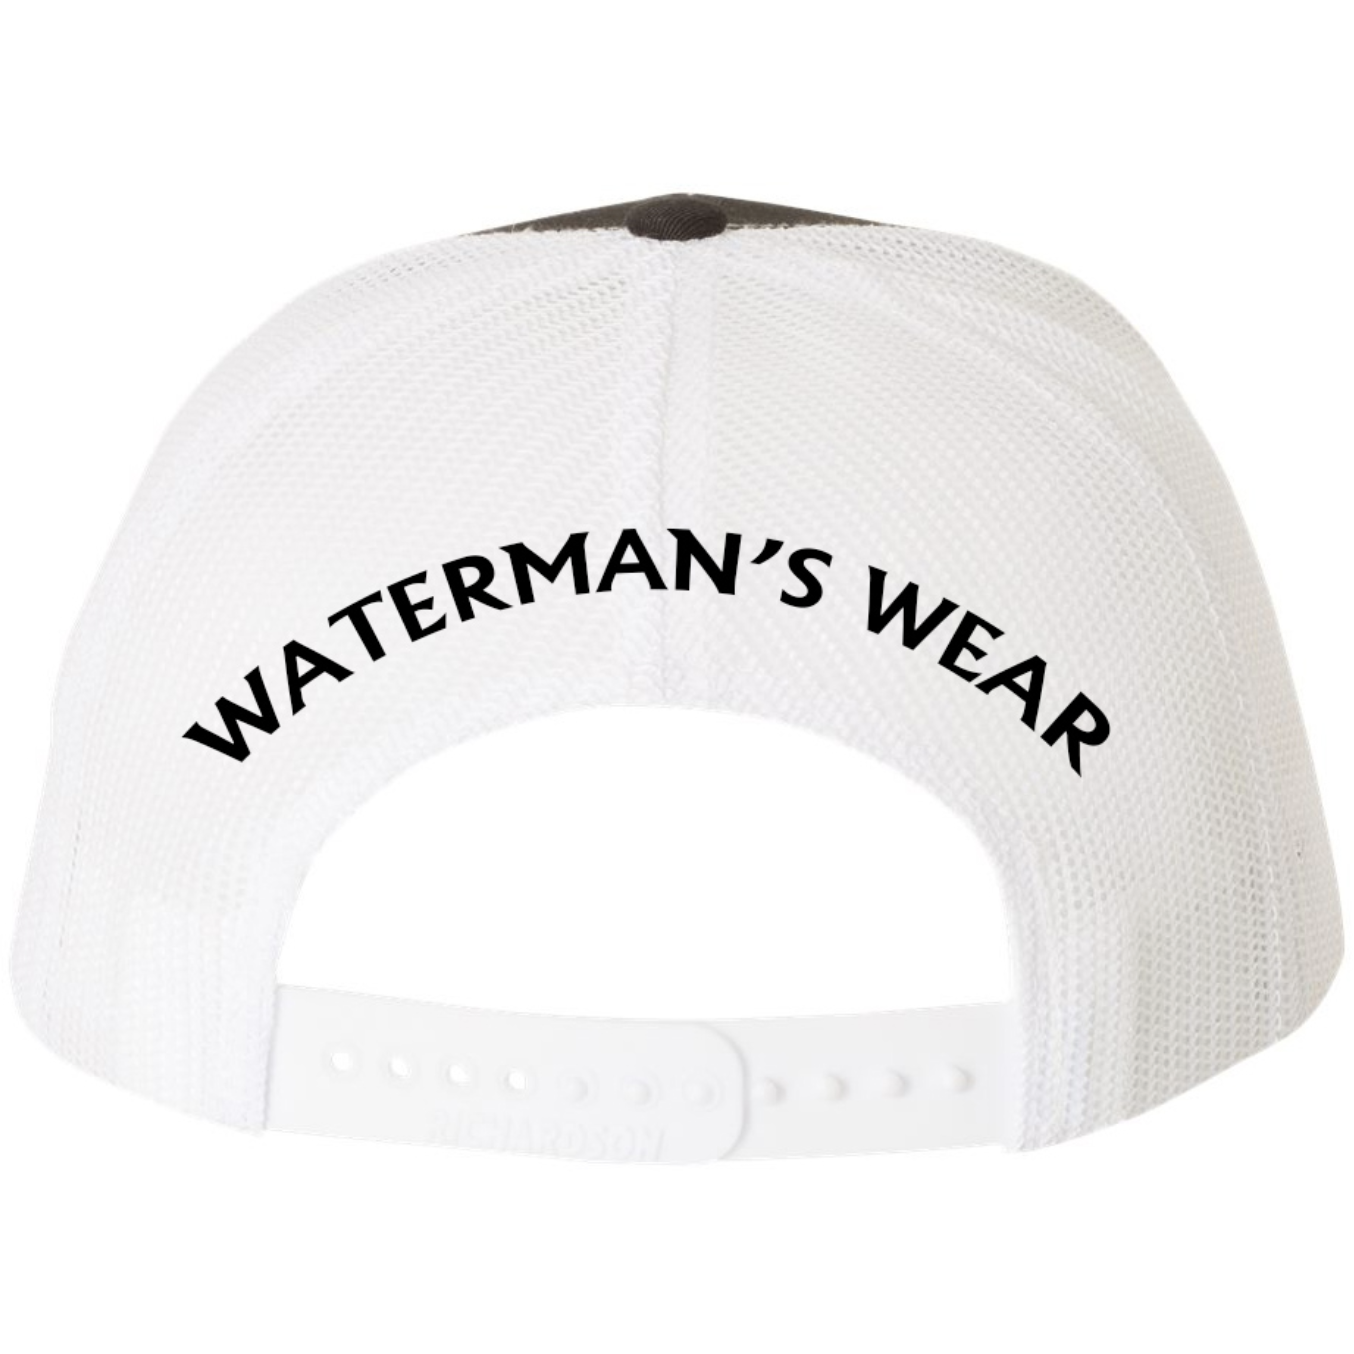 Waterman's Wear Trident Logo Dual Color Adjustable Trucker Hat - Black with White